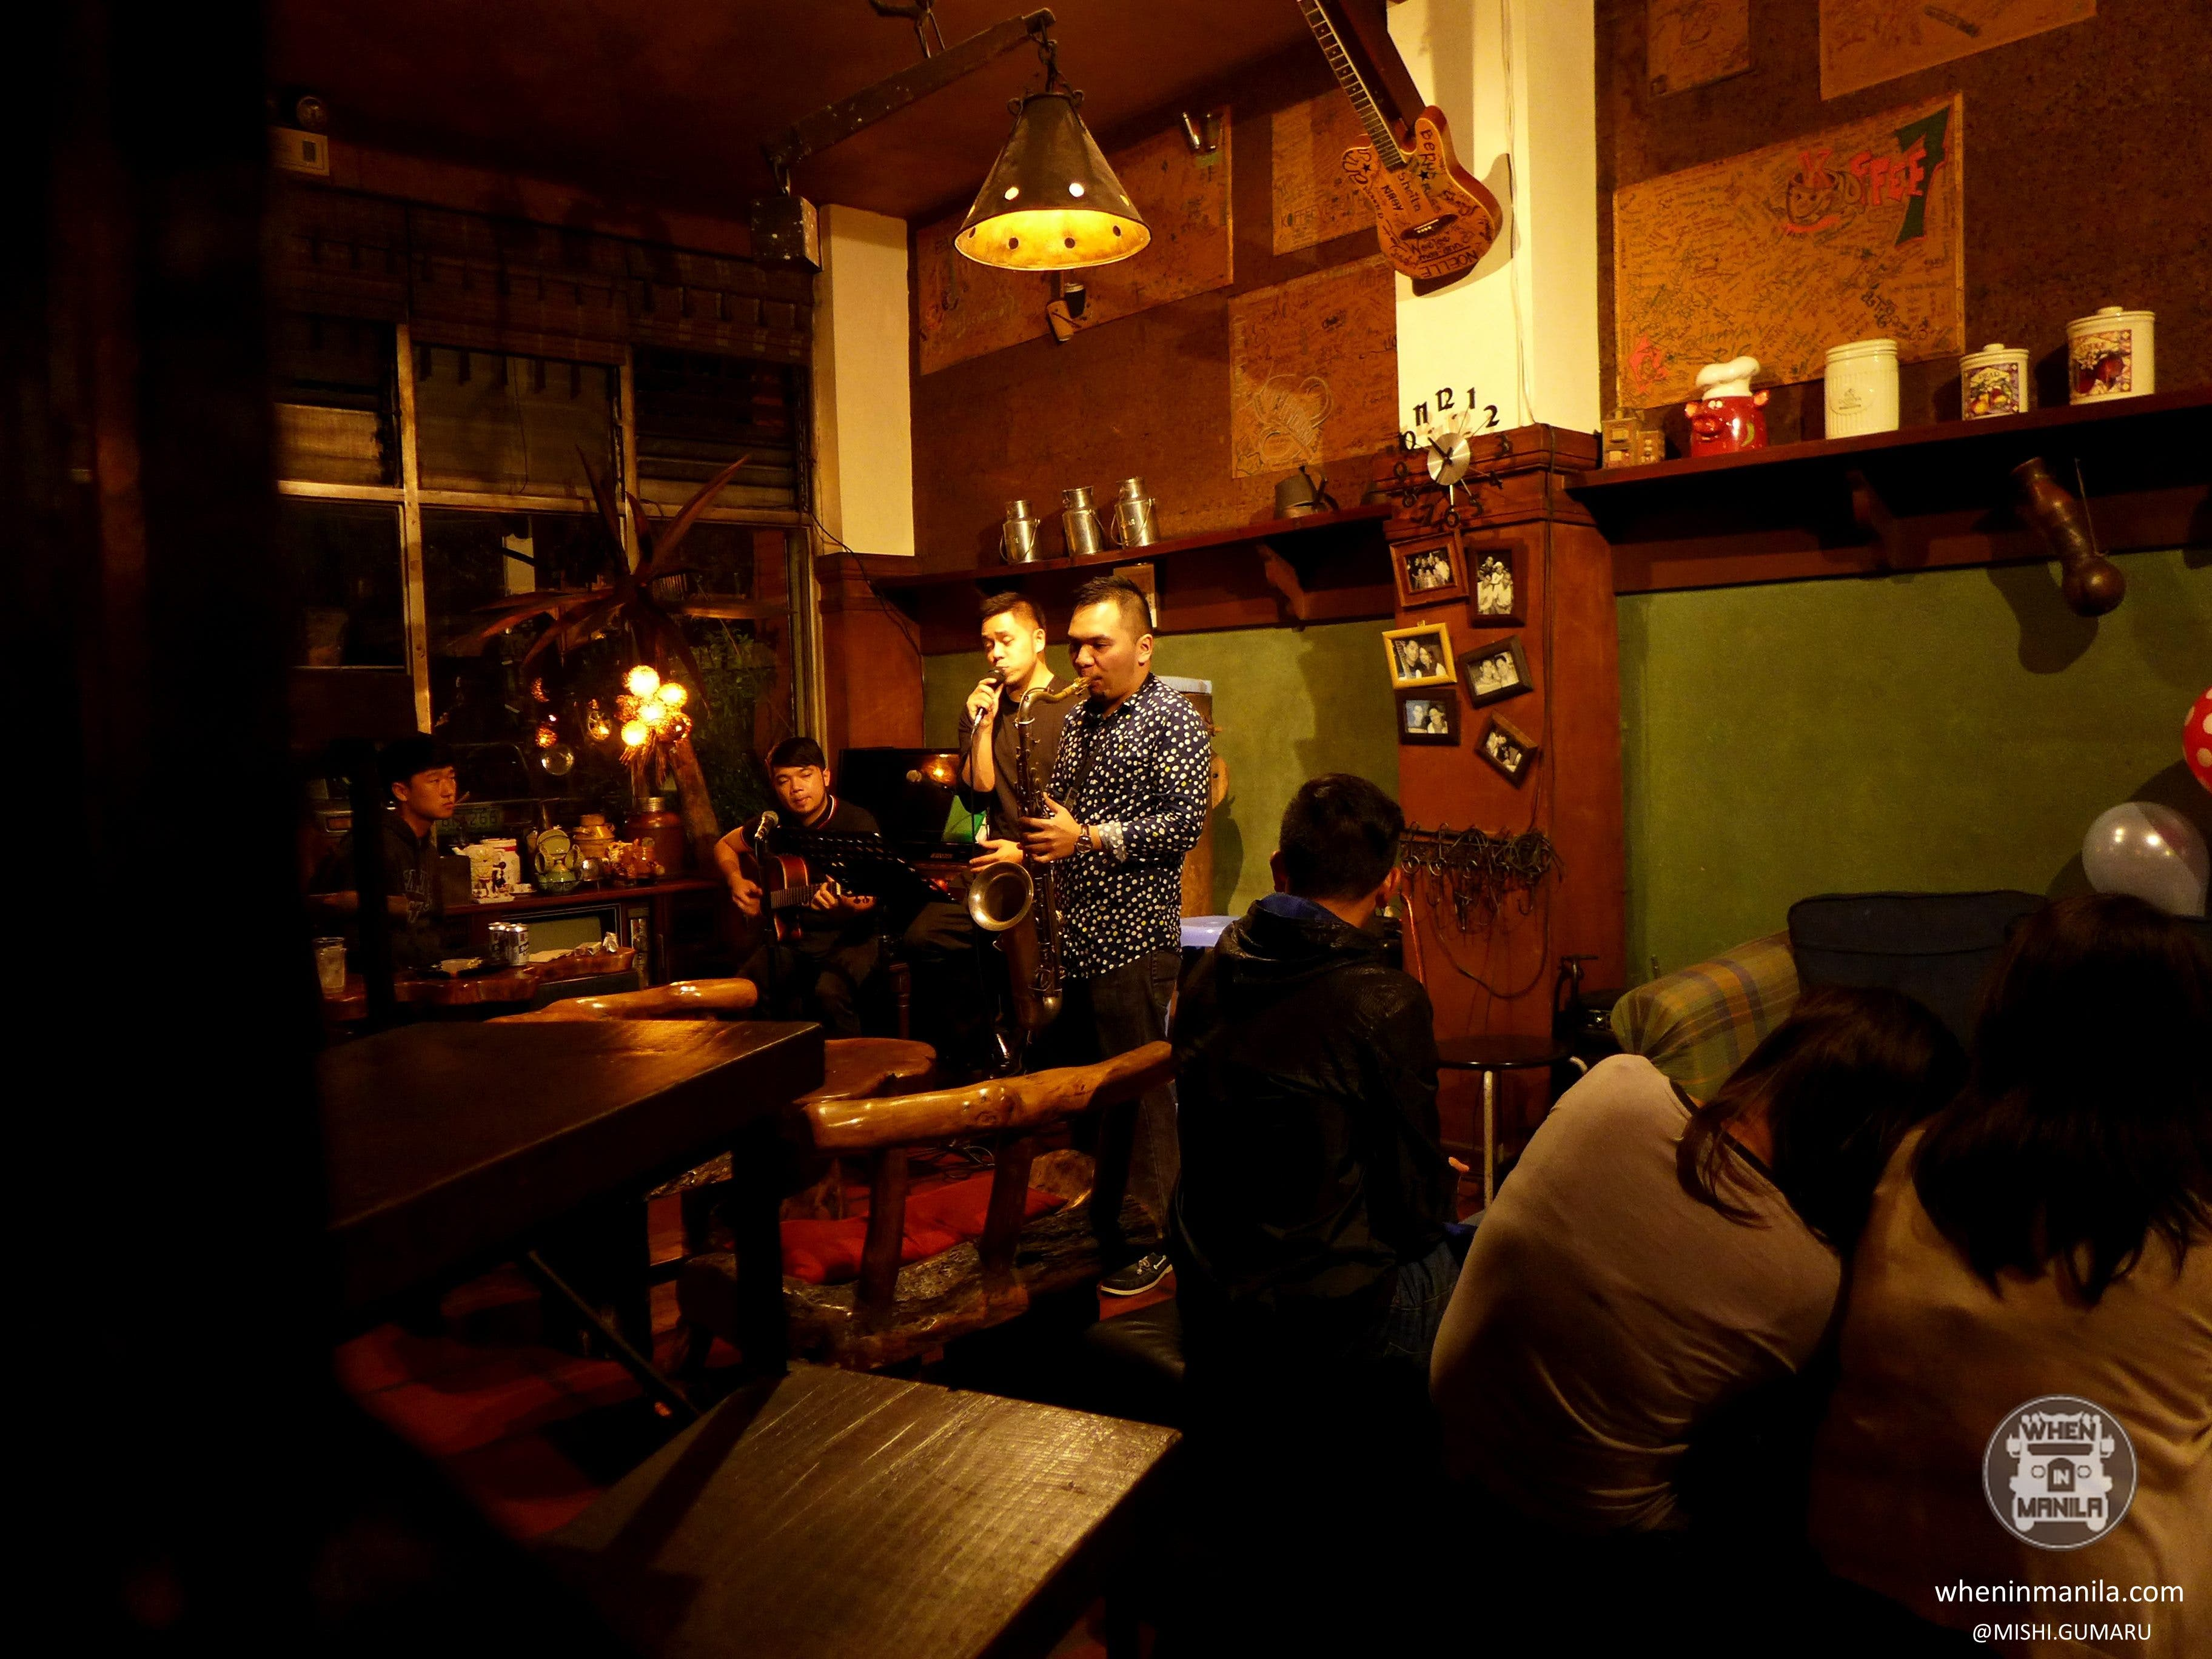 5-Cool-And-Quirky-Cafes-You-Must-Check-Out-When-In-Baguio23